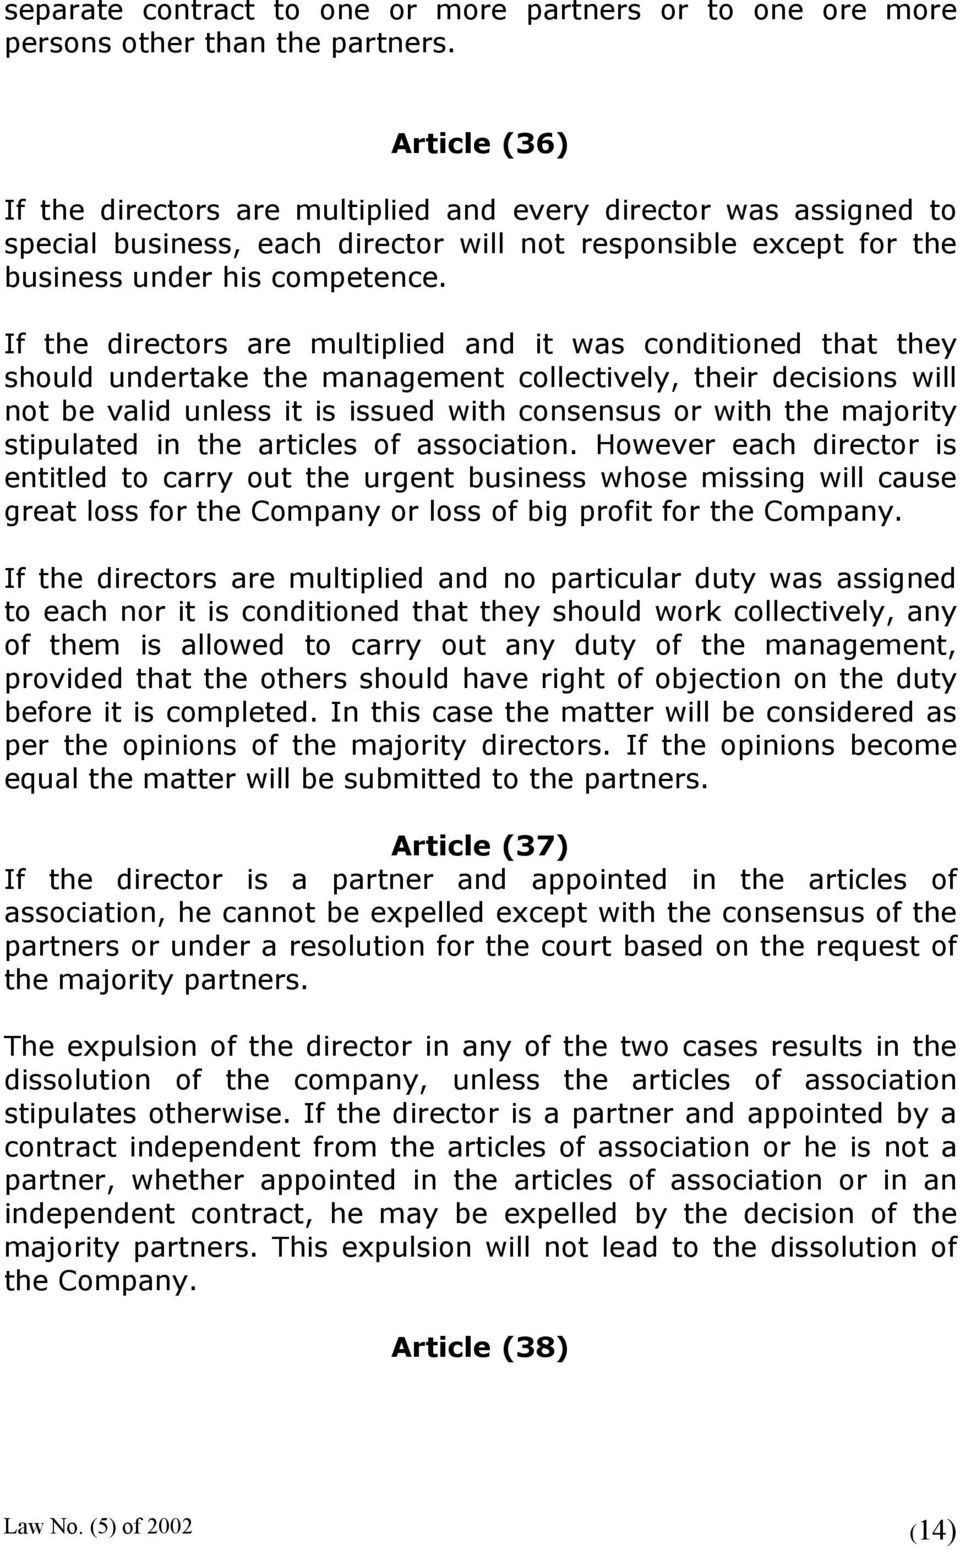 If the directors are multiplied and it was conditioned that they should undertake the management collectively, their decisions will not be valid unless it is issued with consensus or with the